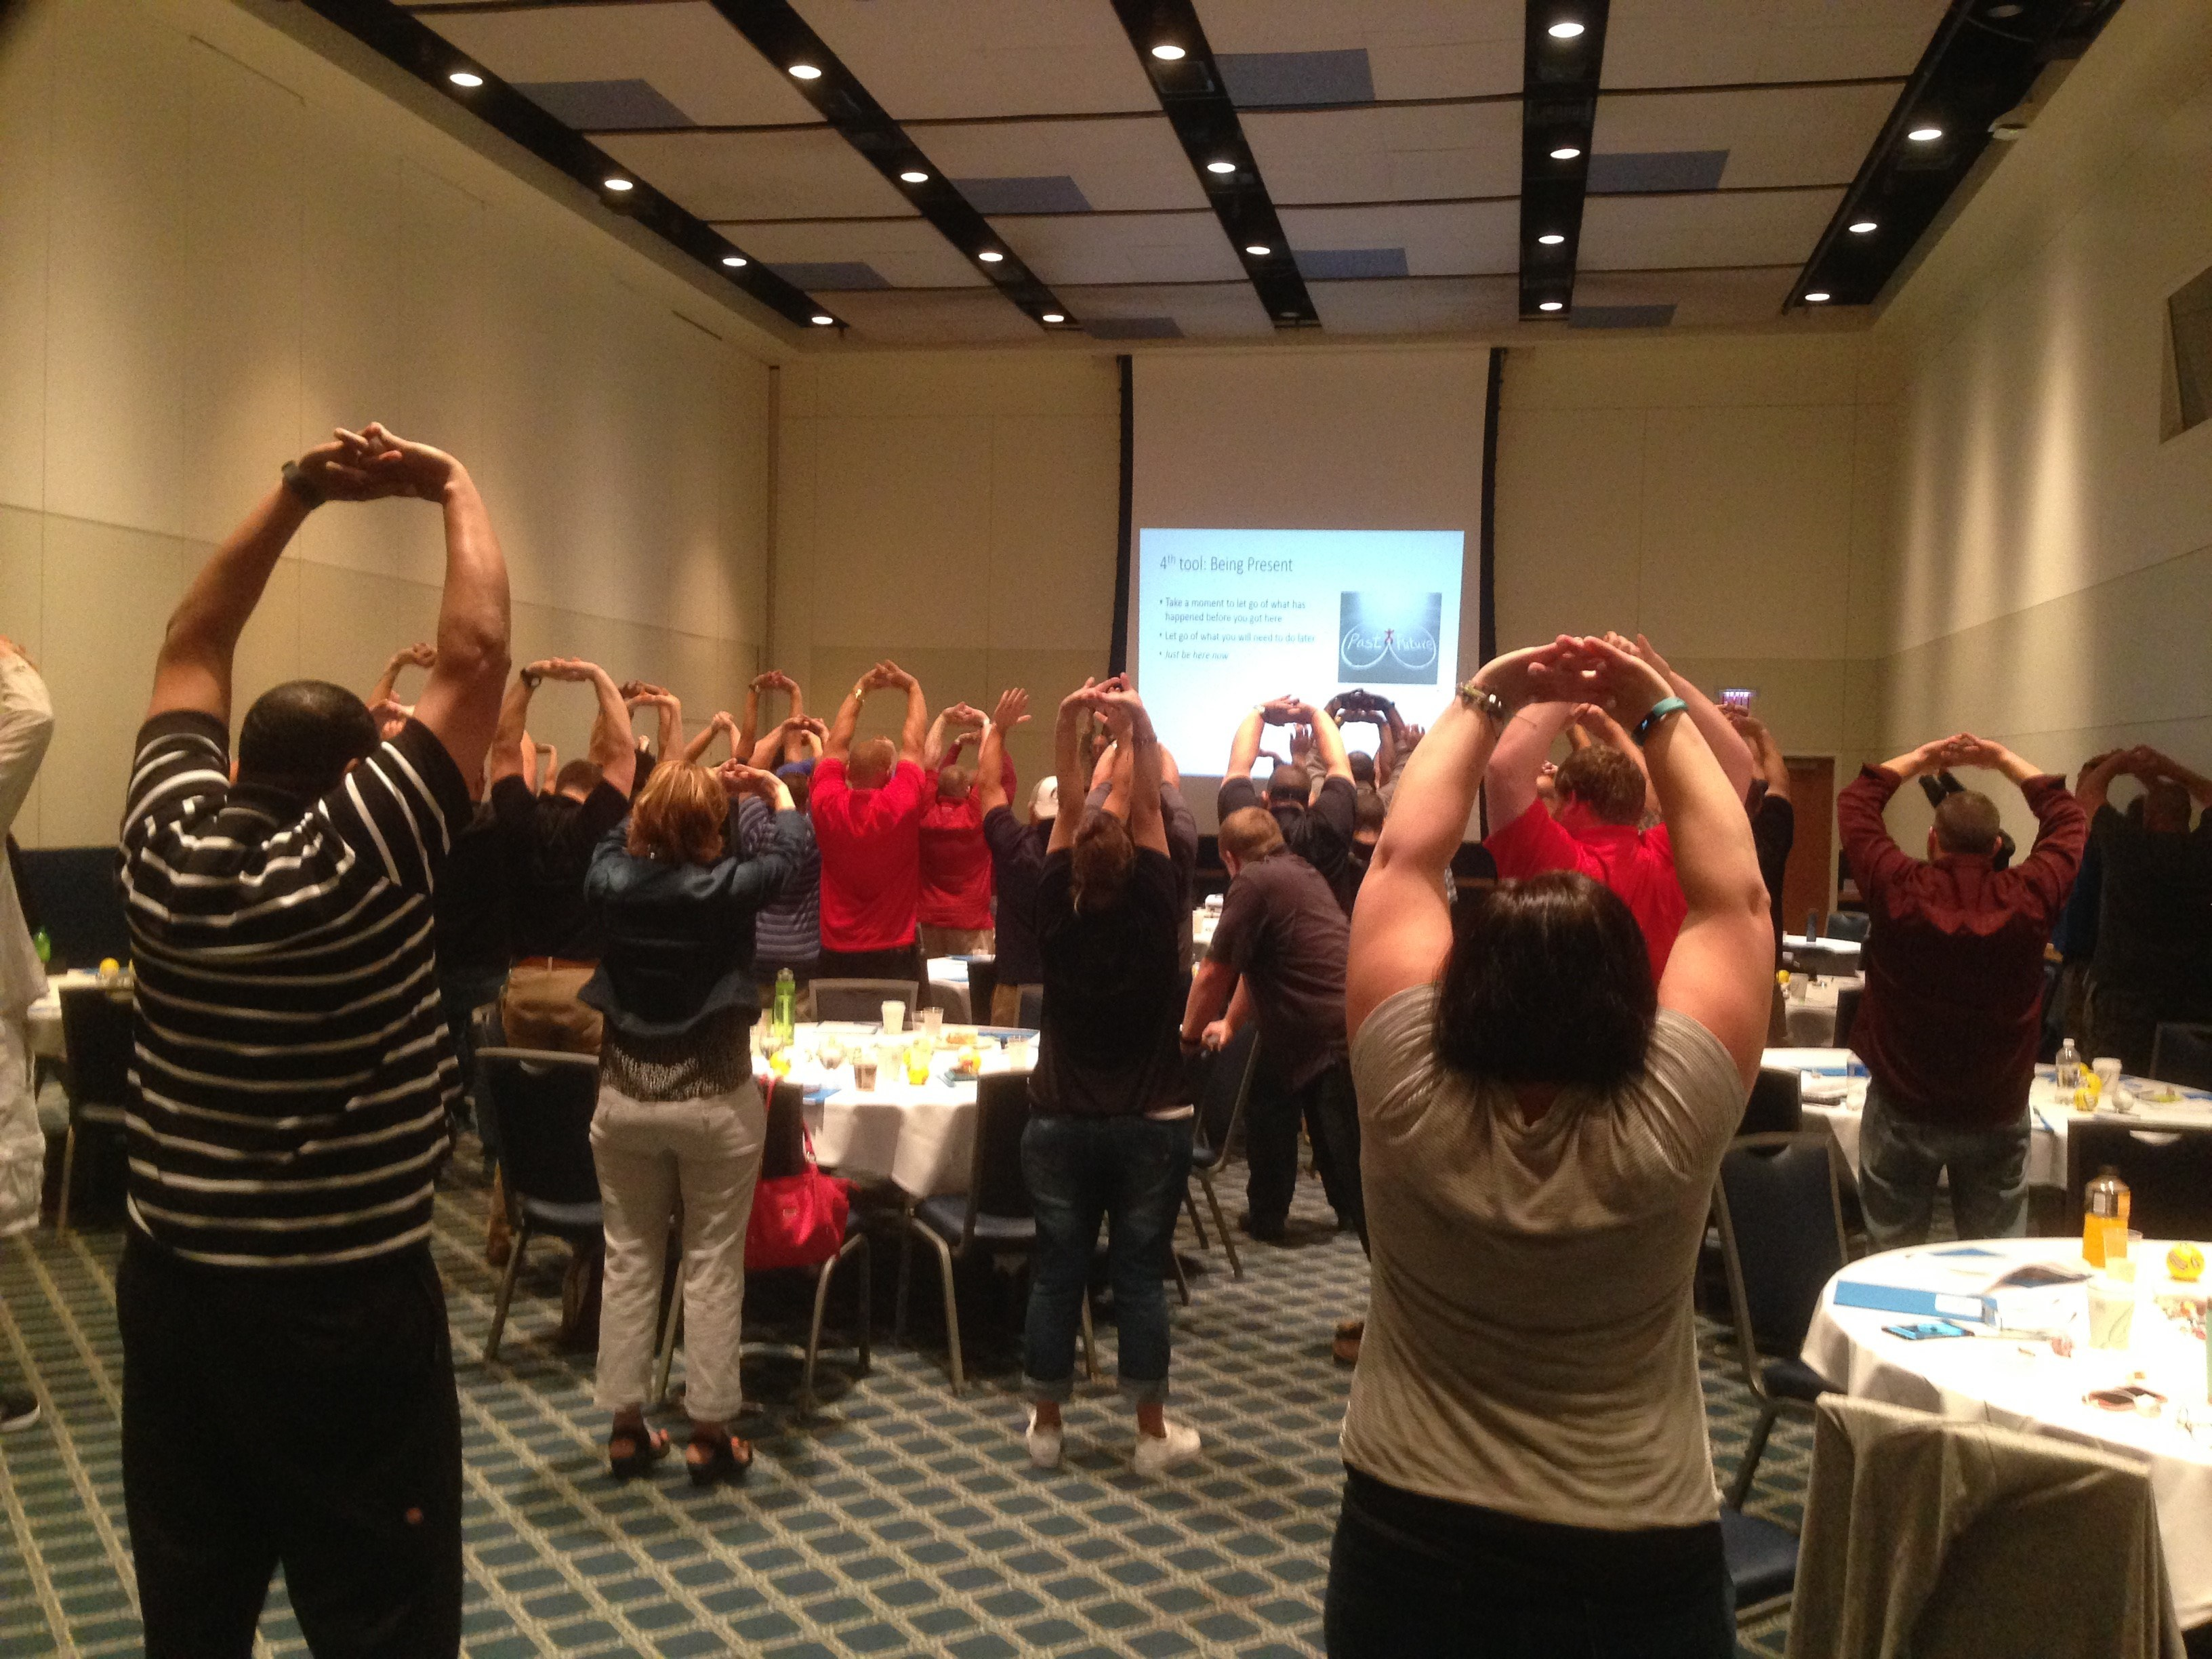 Pennsylvania's BJJS staff practice stress-reduction techniques during a recent session instructed by Penn State Research Associate Sebrina Doyle and consultant Mark Agrusti.